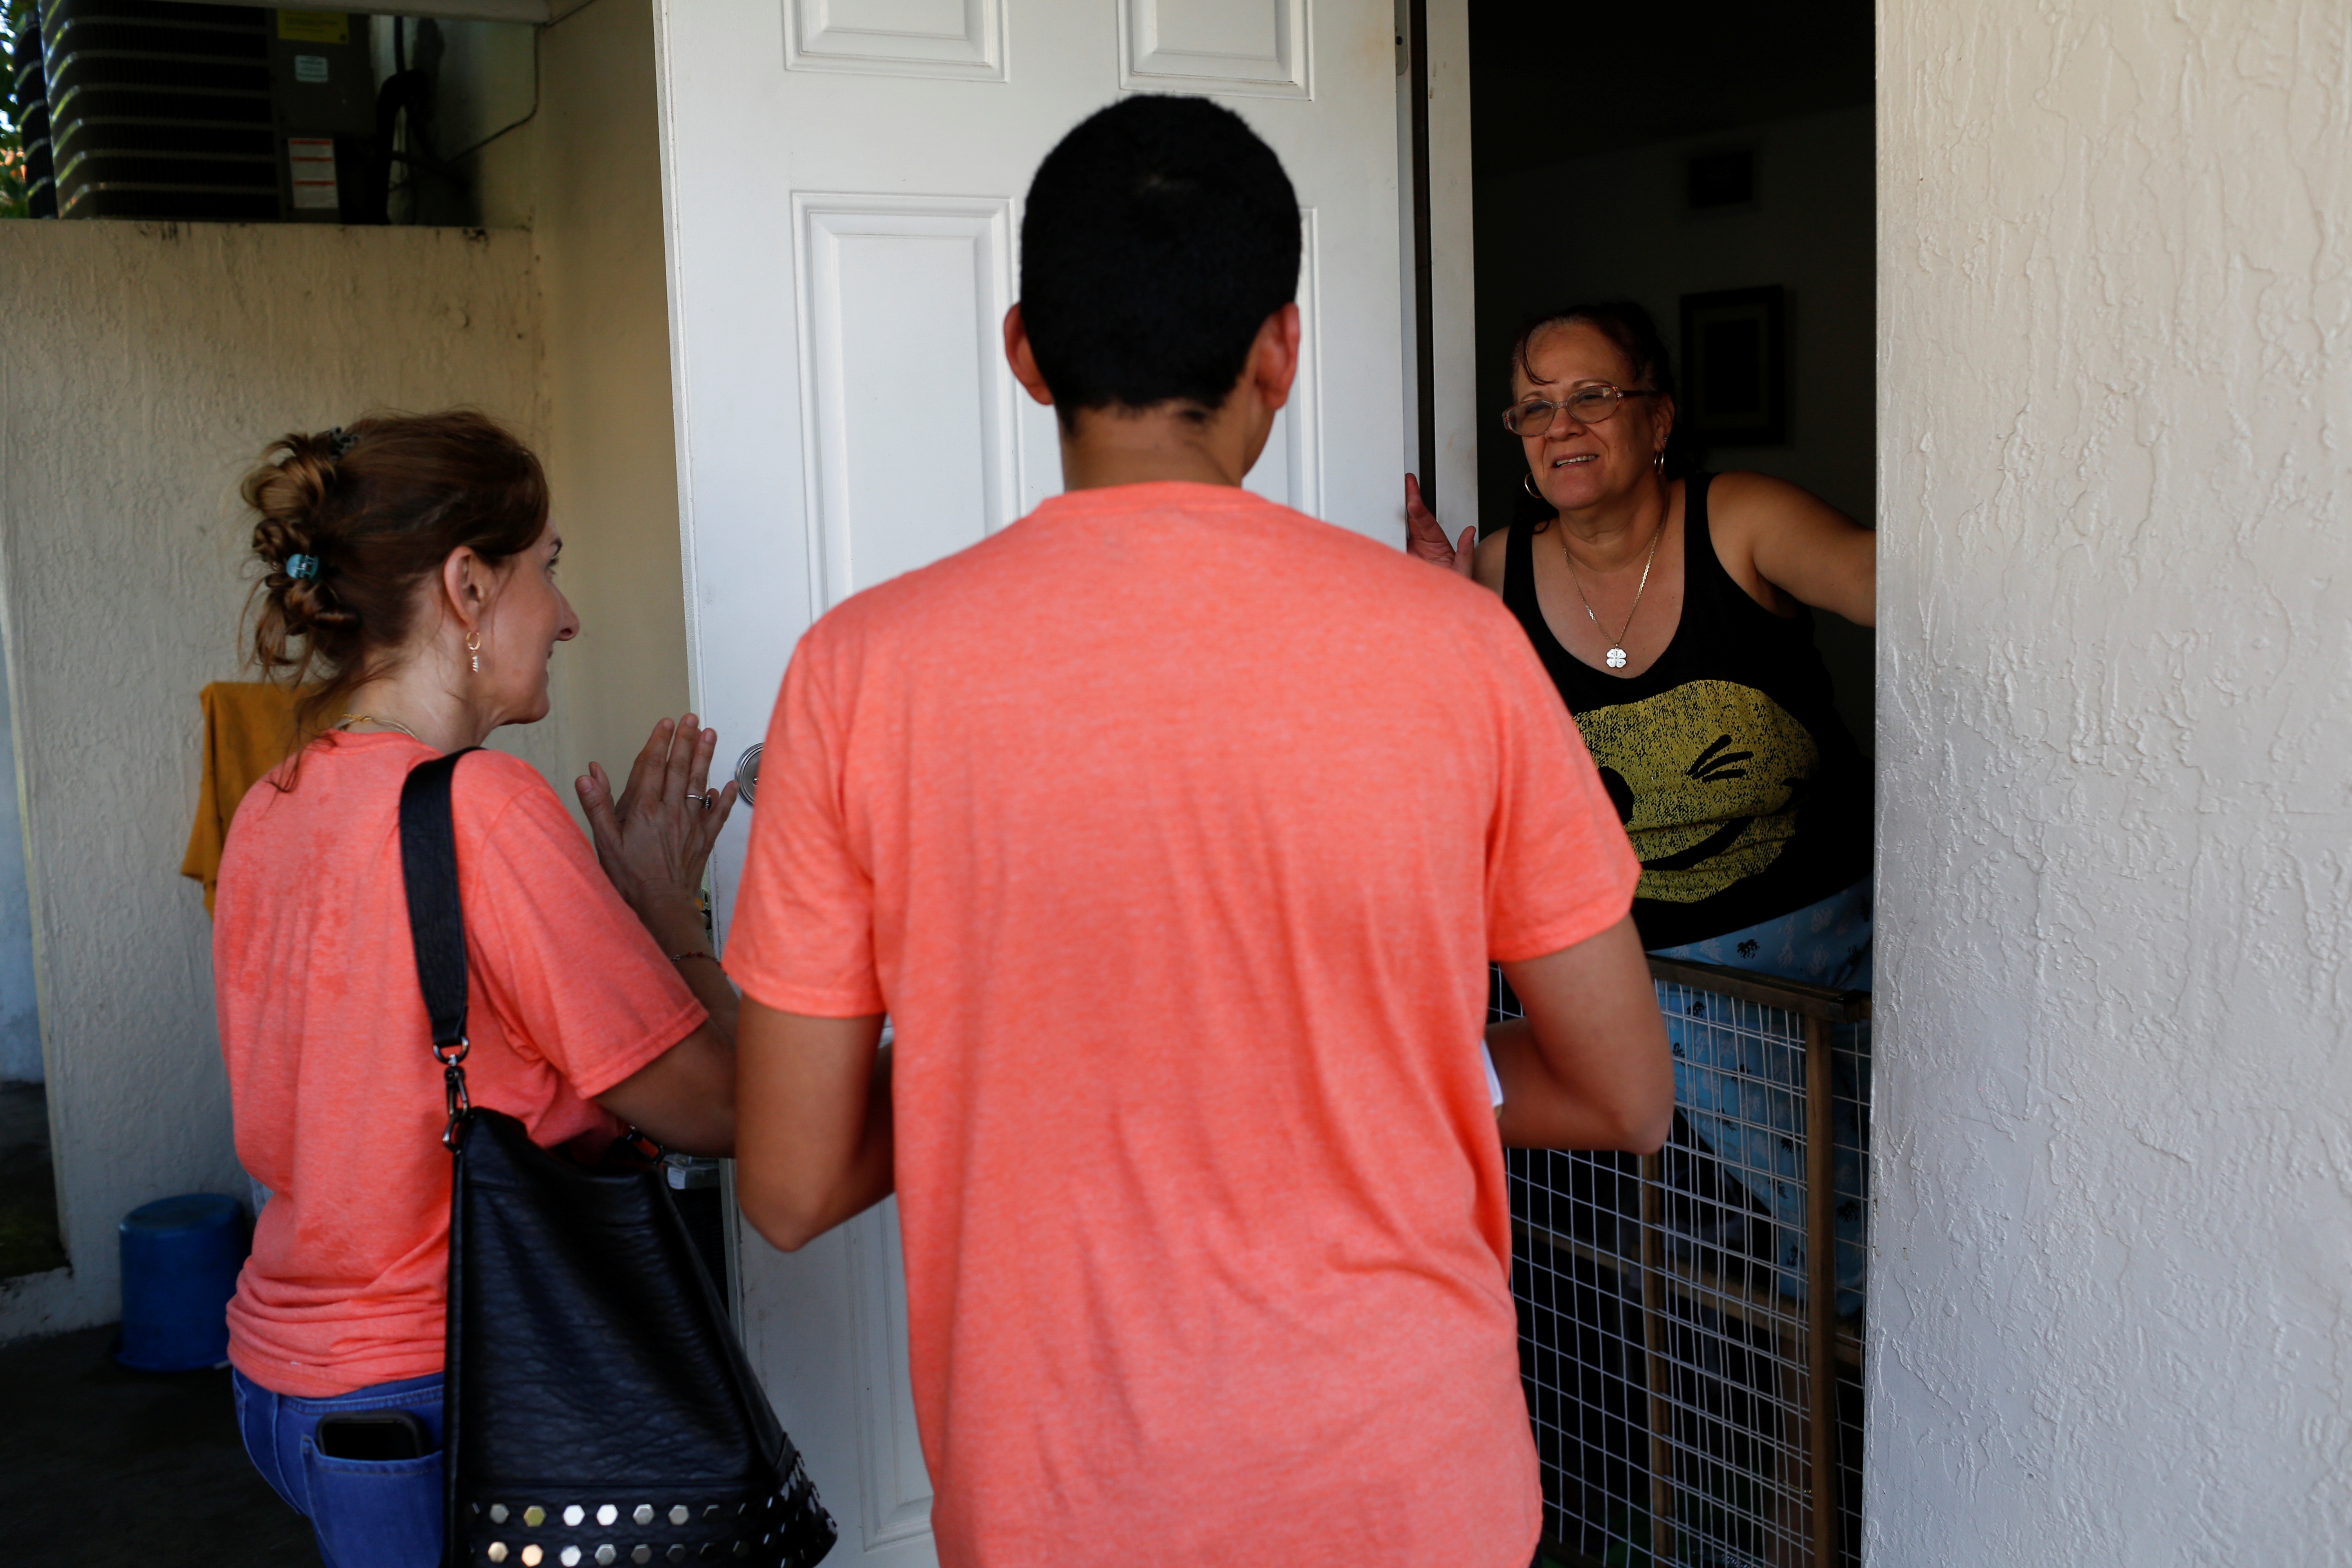 Immigration rights activists hand out pamphlets as communities braced for a reported wave of deportation arrests across the United States by Immigration and Customs Enforcement officers (REUTERS/Marco Bello)